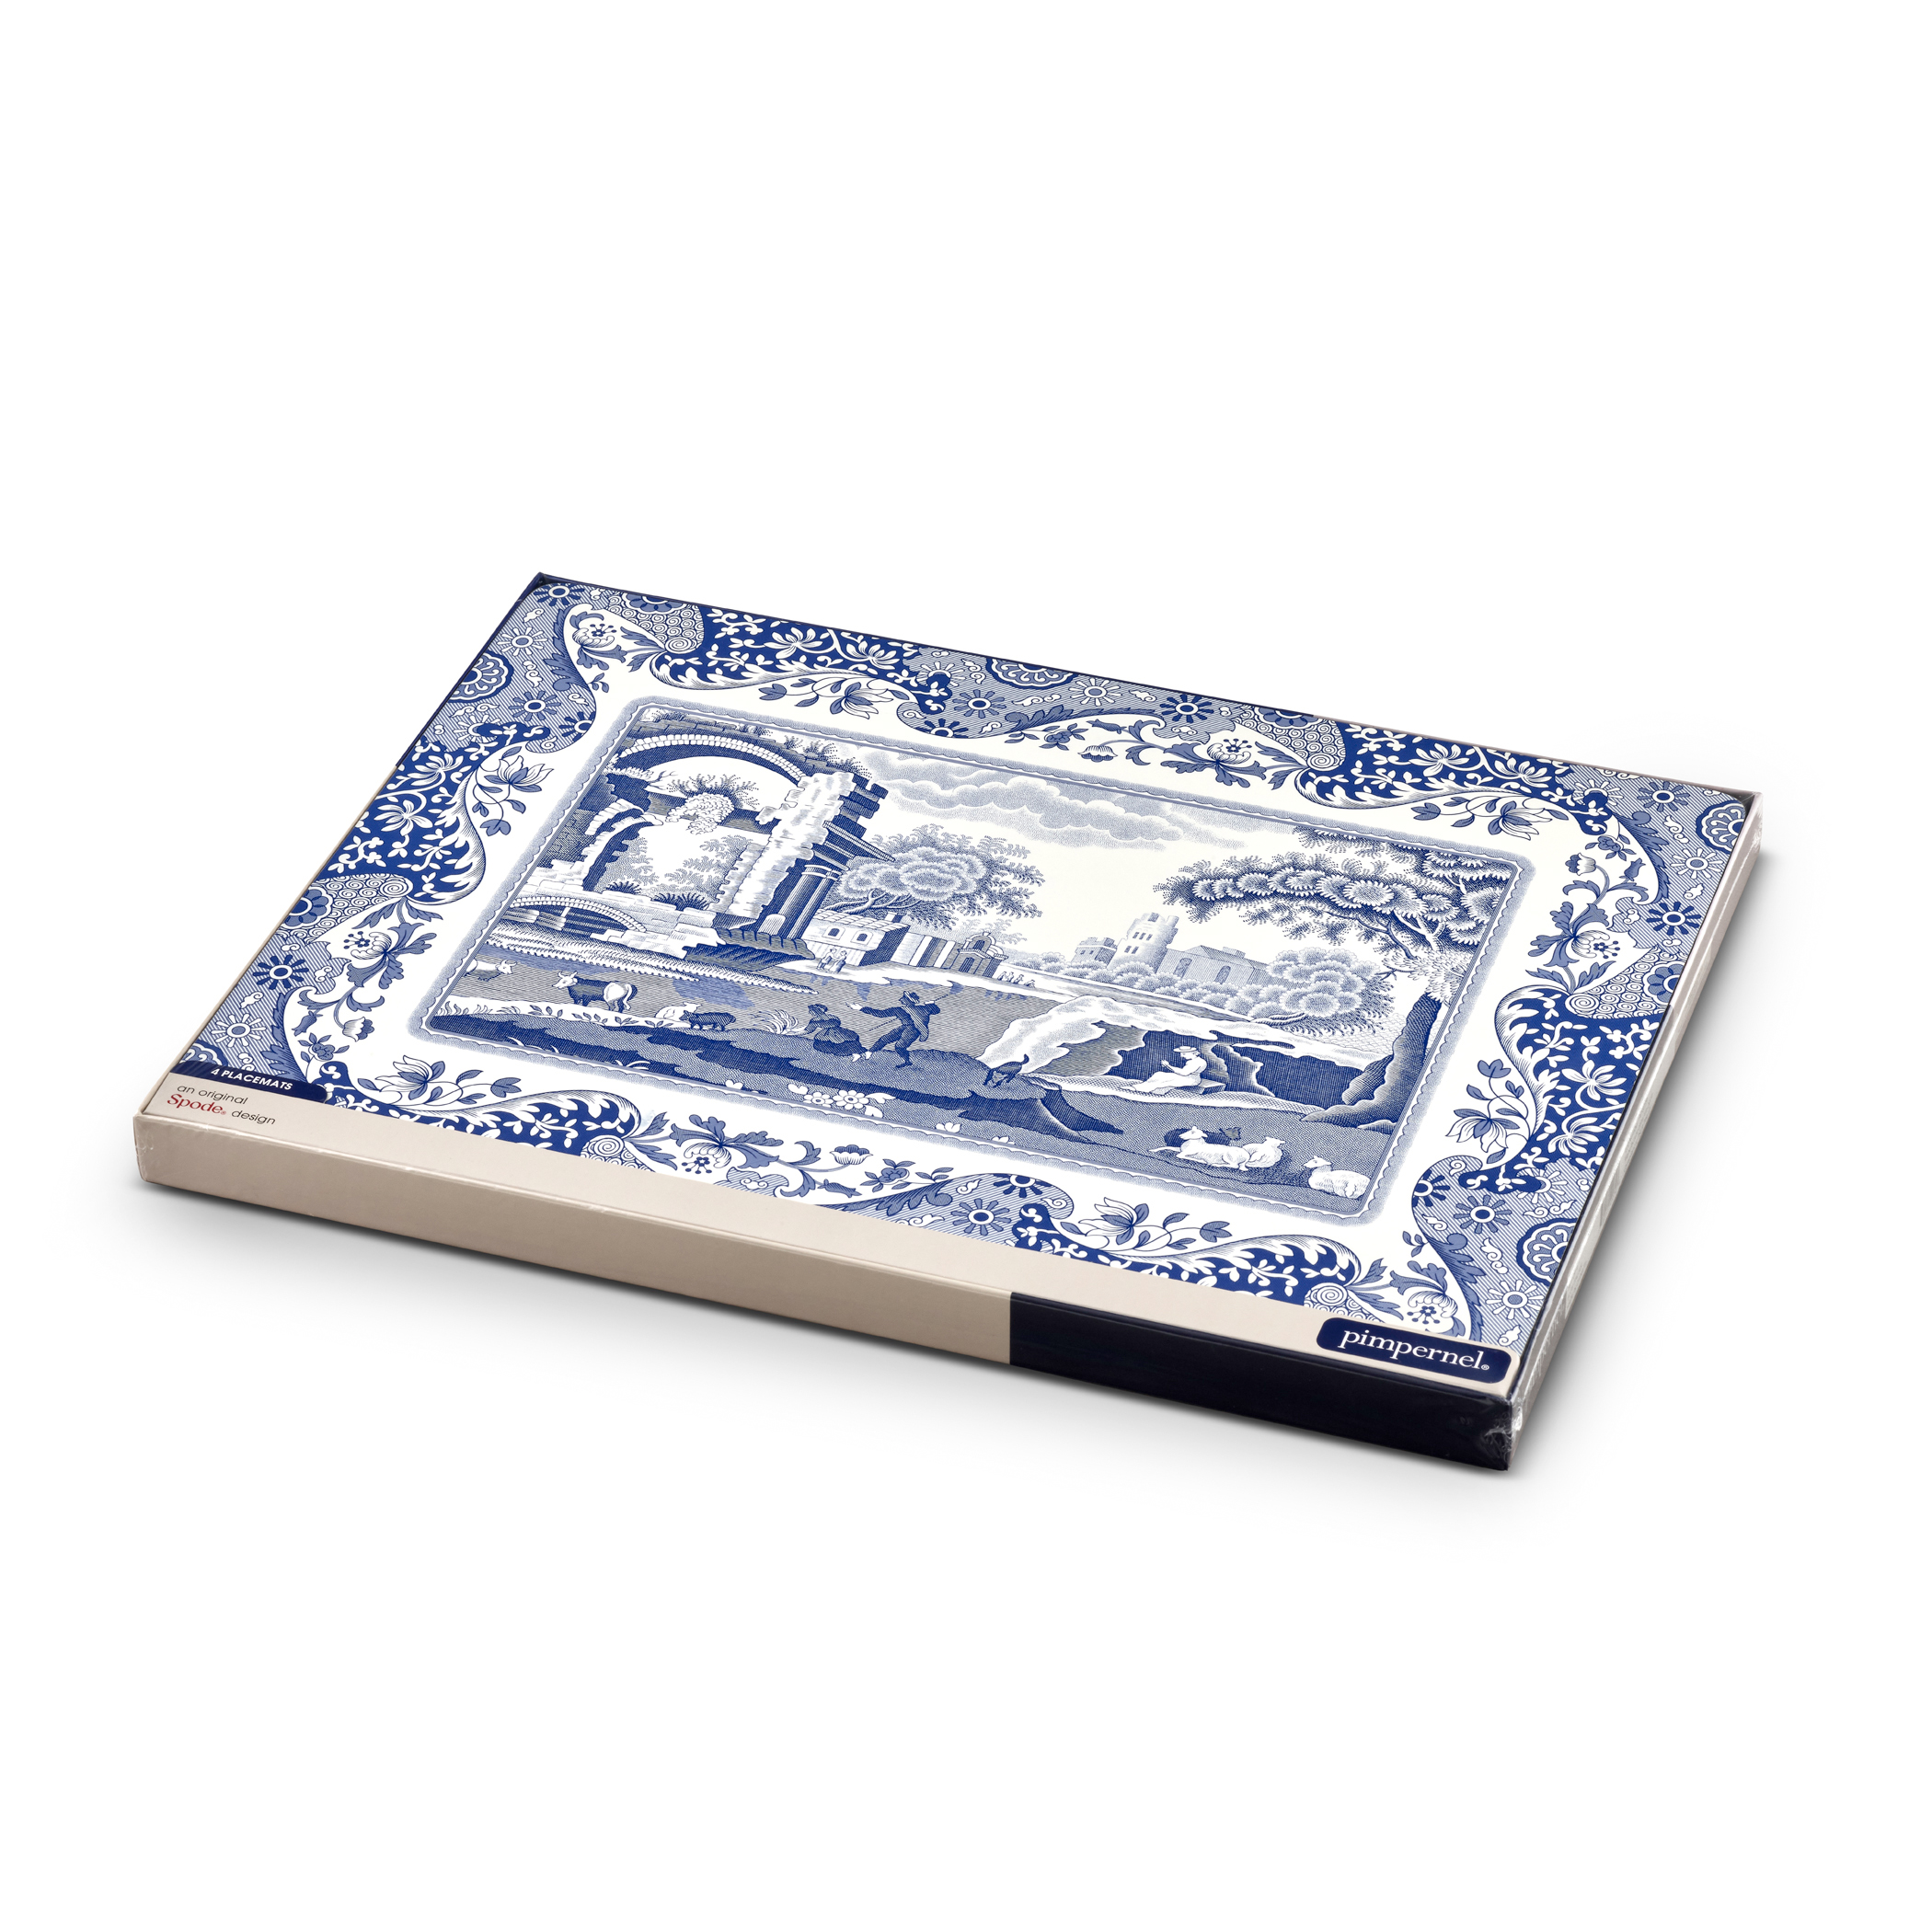 Pimpernel Blue Italian Placemats Set of 4 image number 4